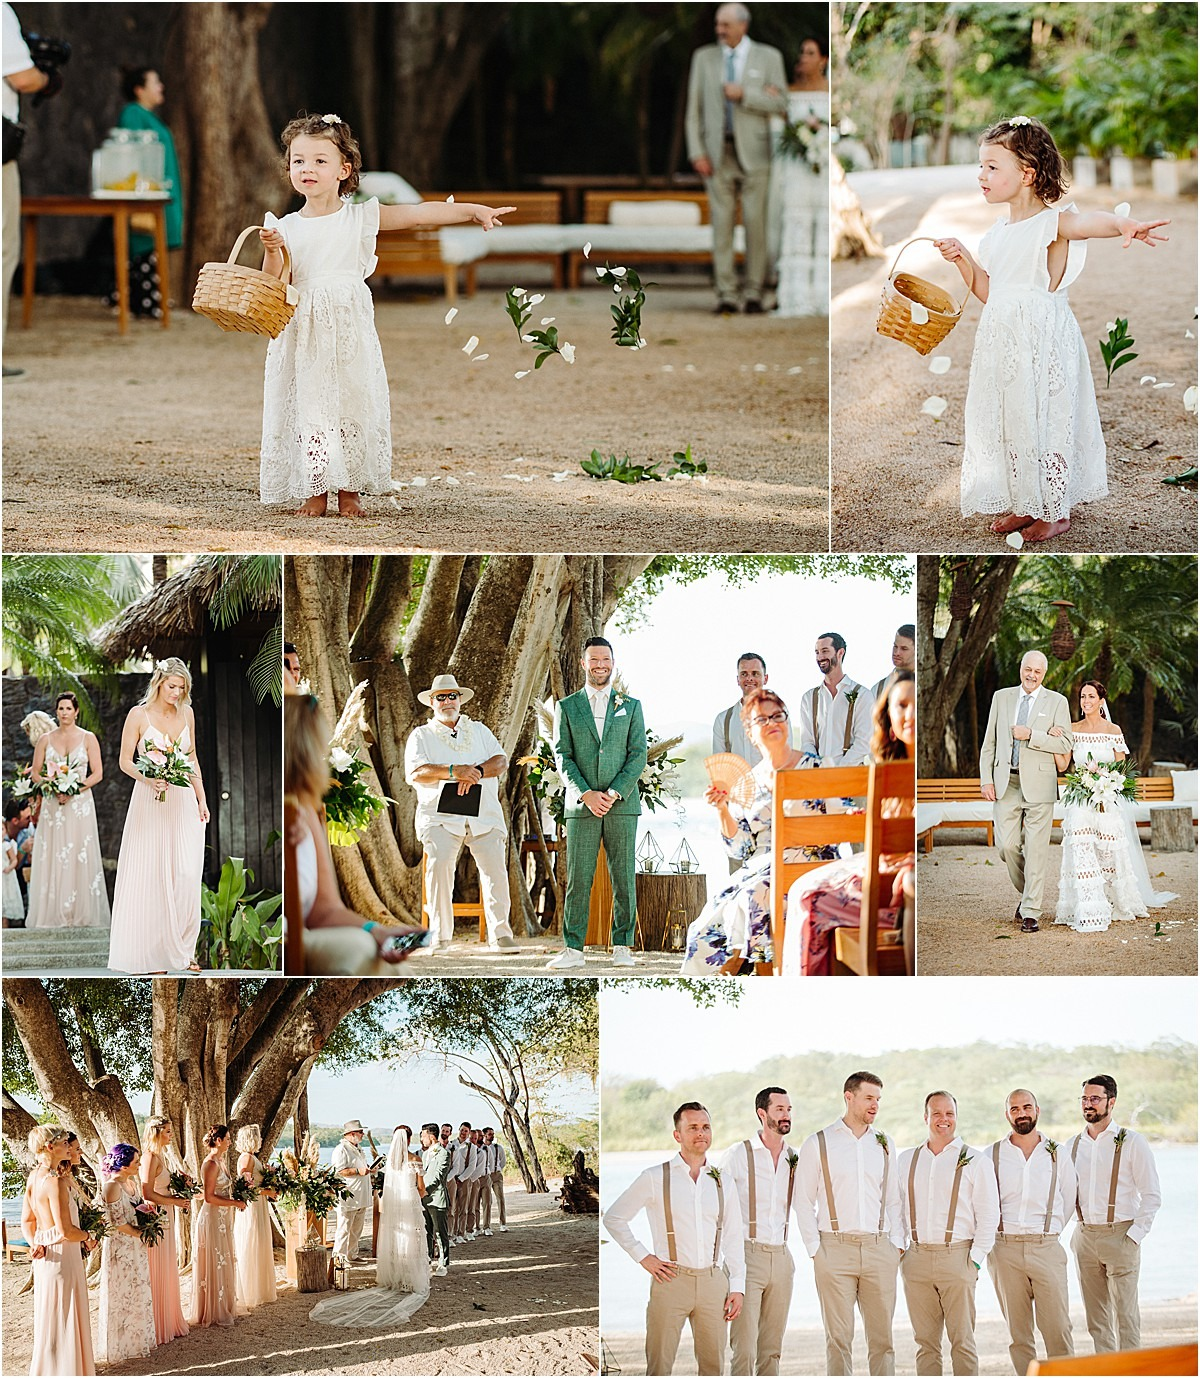 bridal groomsmen wedding party